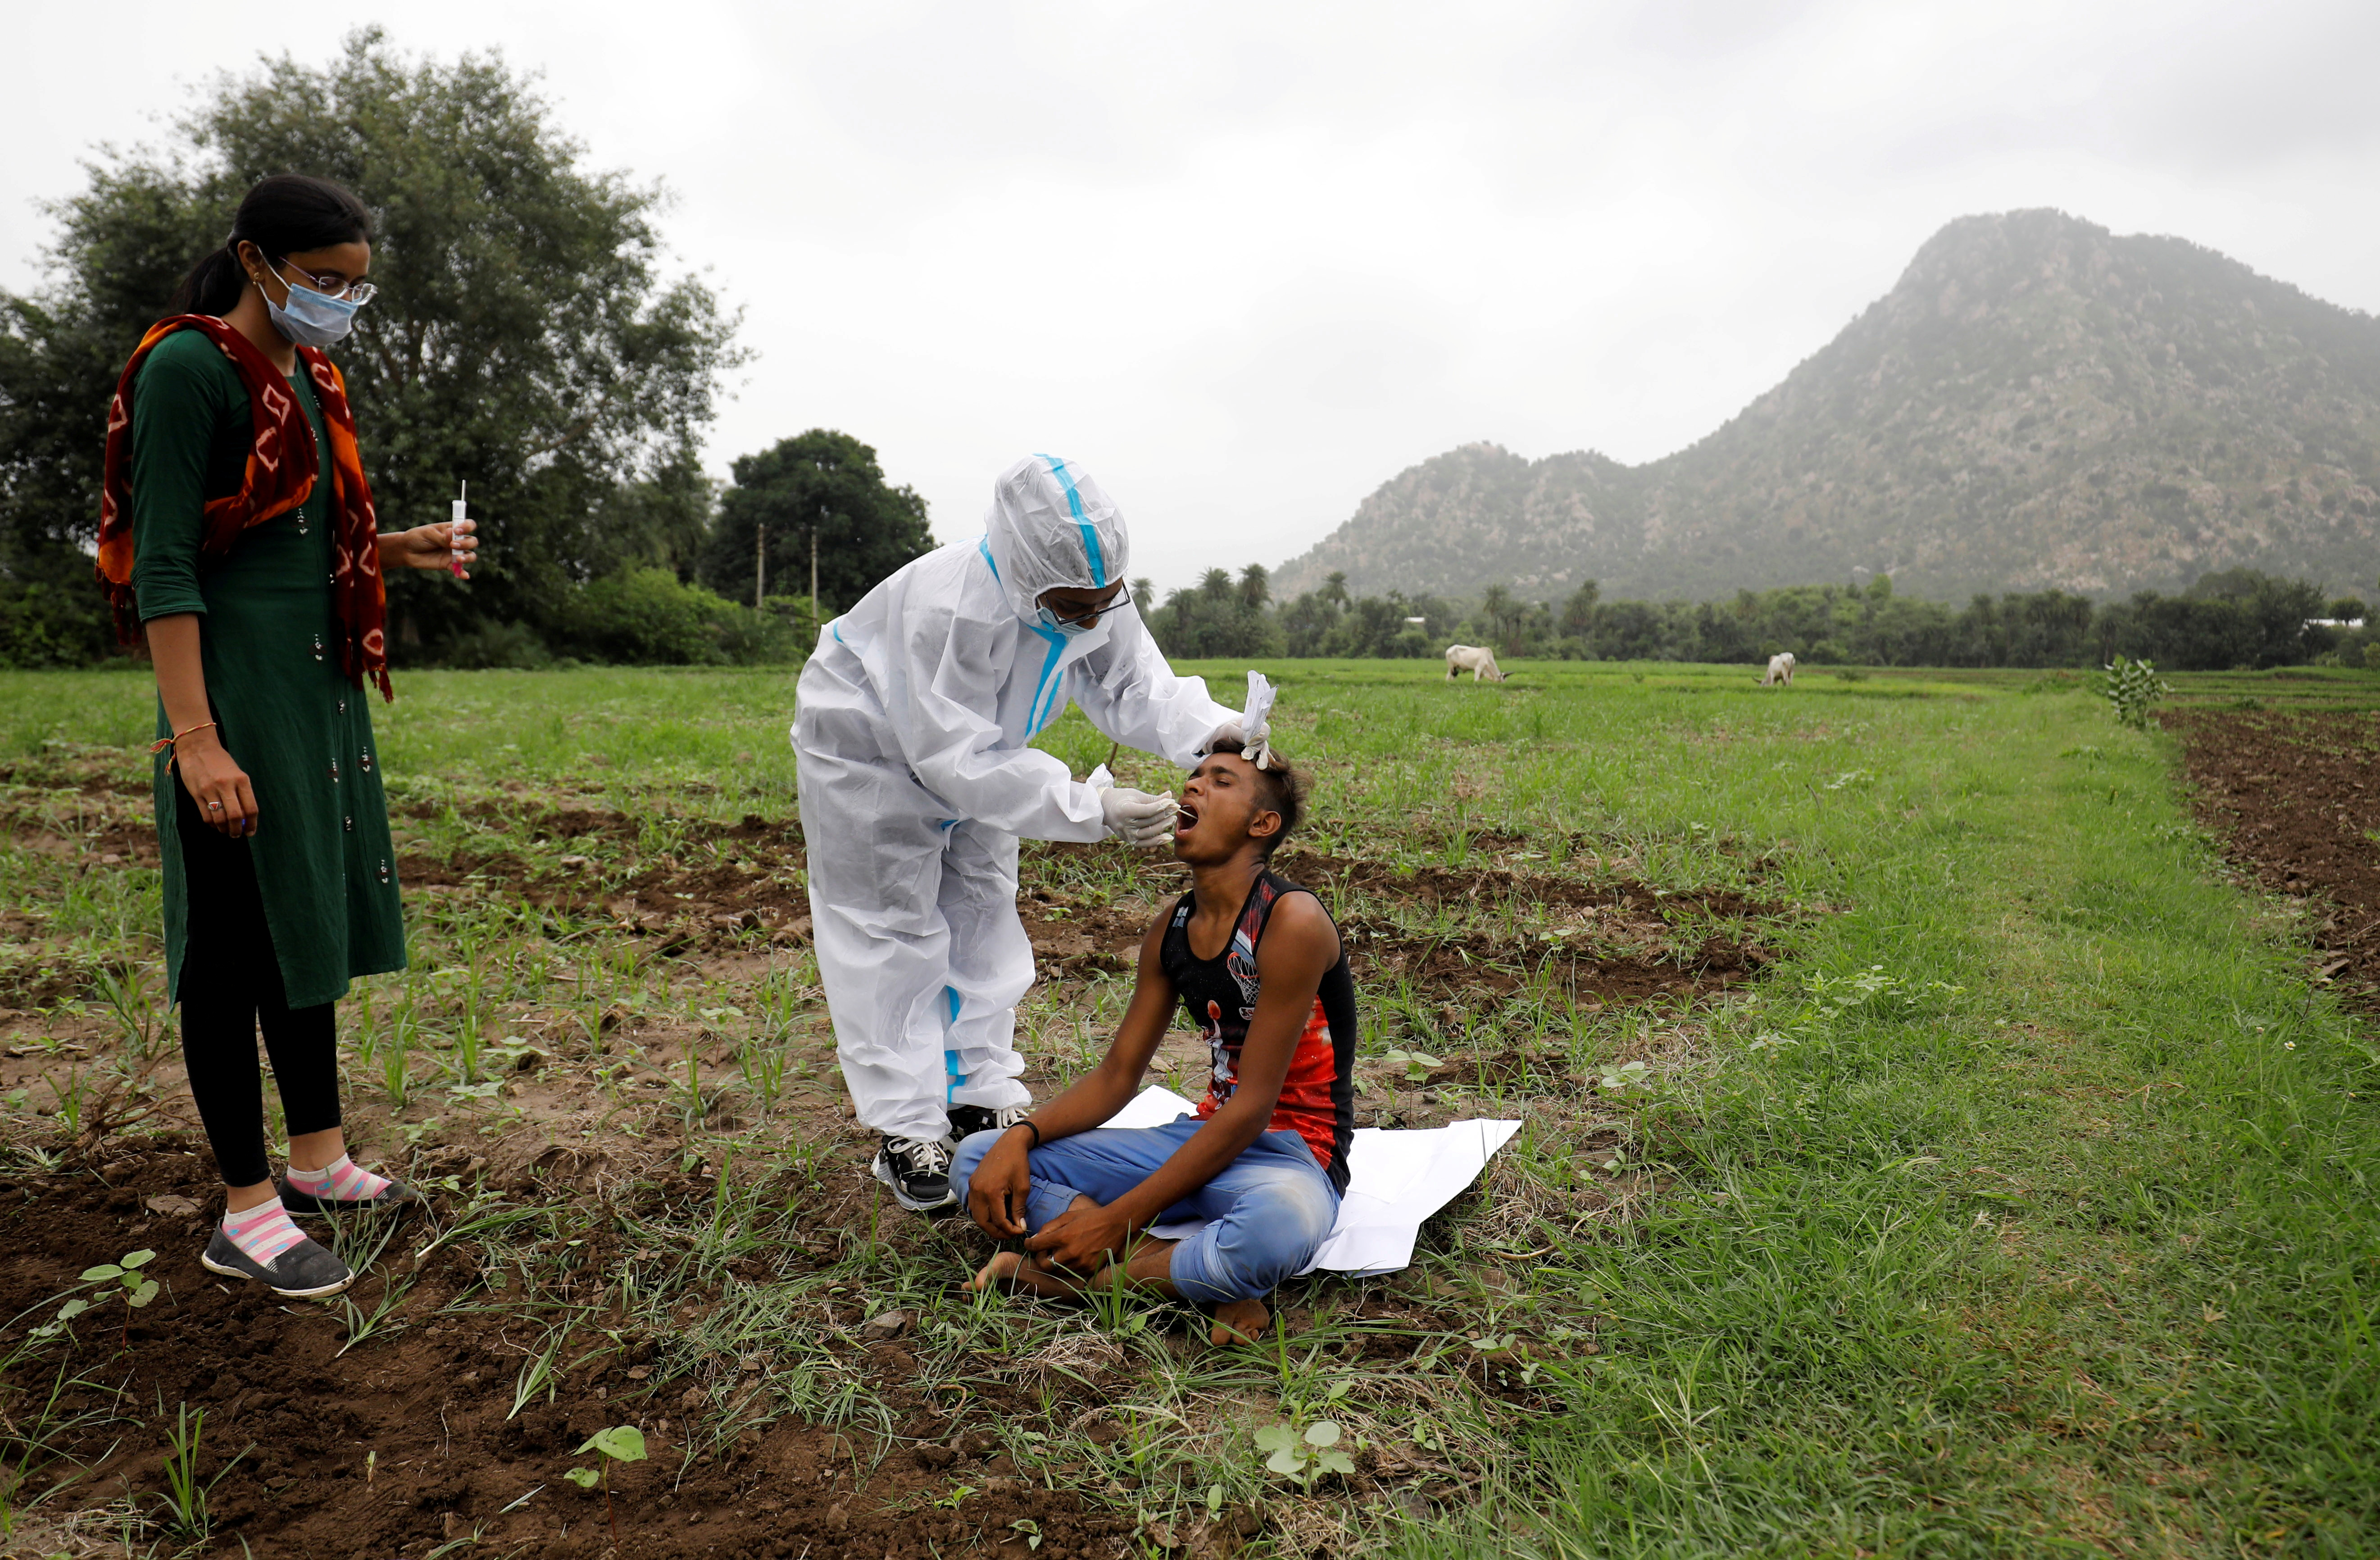 Healthcare worker Hemaben Raval collects a swab for a rapid antigen test from farmer Vinod Vajabhai Dabhi in his field, during a door-to-door vaccination drive amid the ongoing coronavirus disease (COVID-19) outbreak in Banaskantha district in the western state of Gujarat, India, July 23, 2021. REUTERS/Amit Dave/File Photo